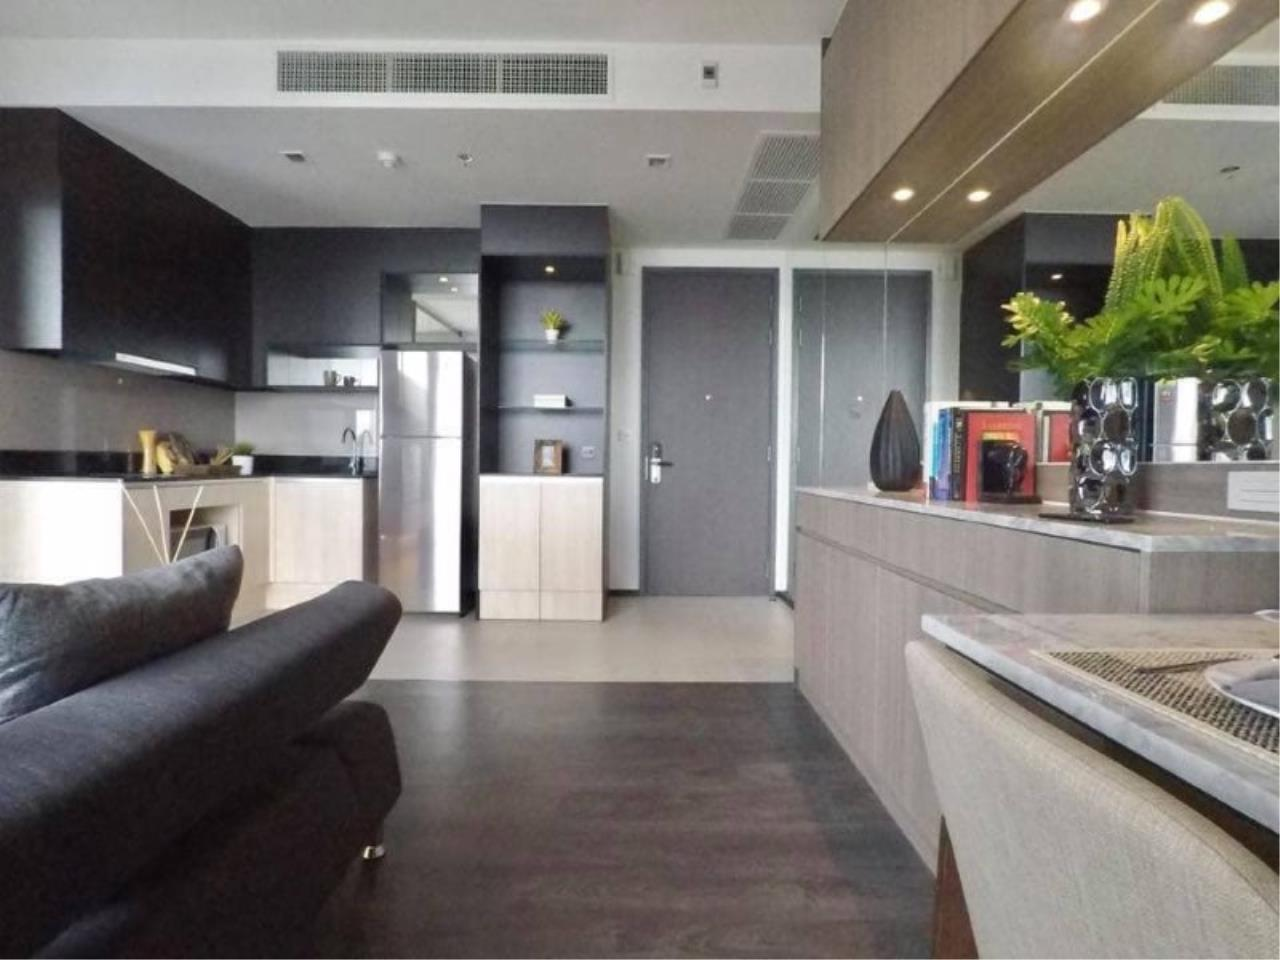 Century21 Skylux Agency's Edge Sukhumvit 23 / Condo For Rent / 1 Bedroom / 42 SQM / BTS Asok / Bangkok 6